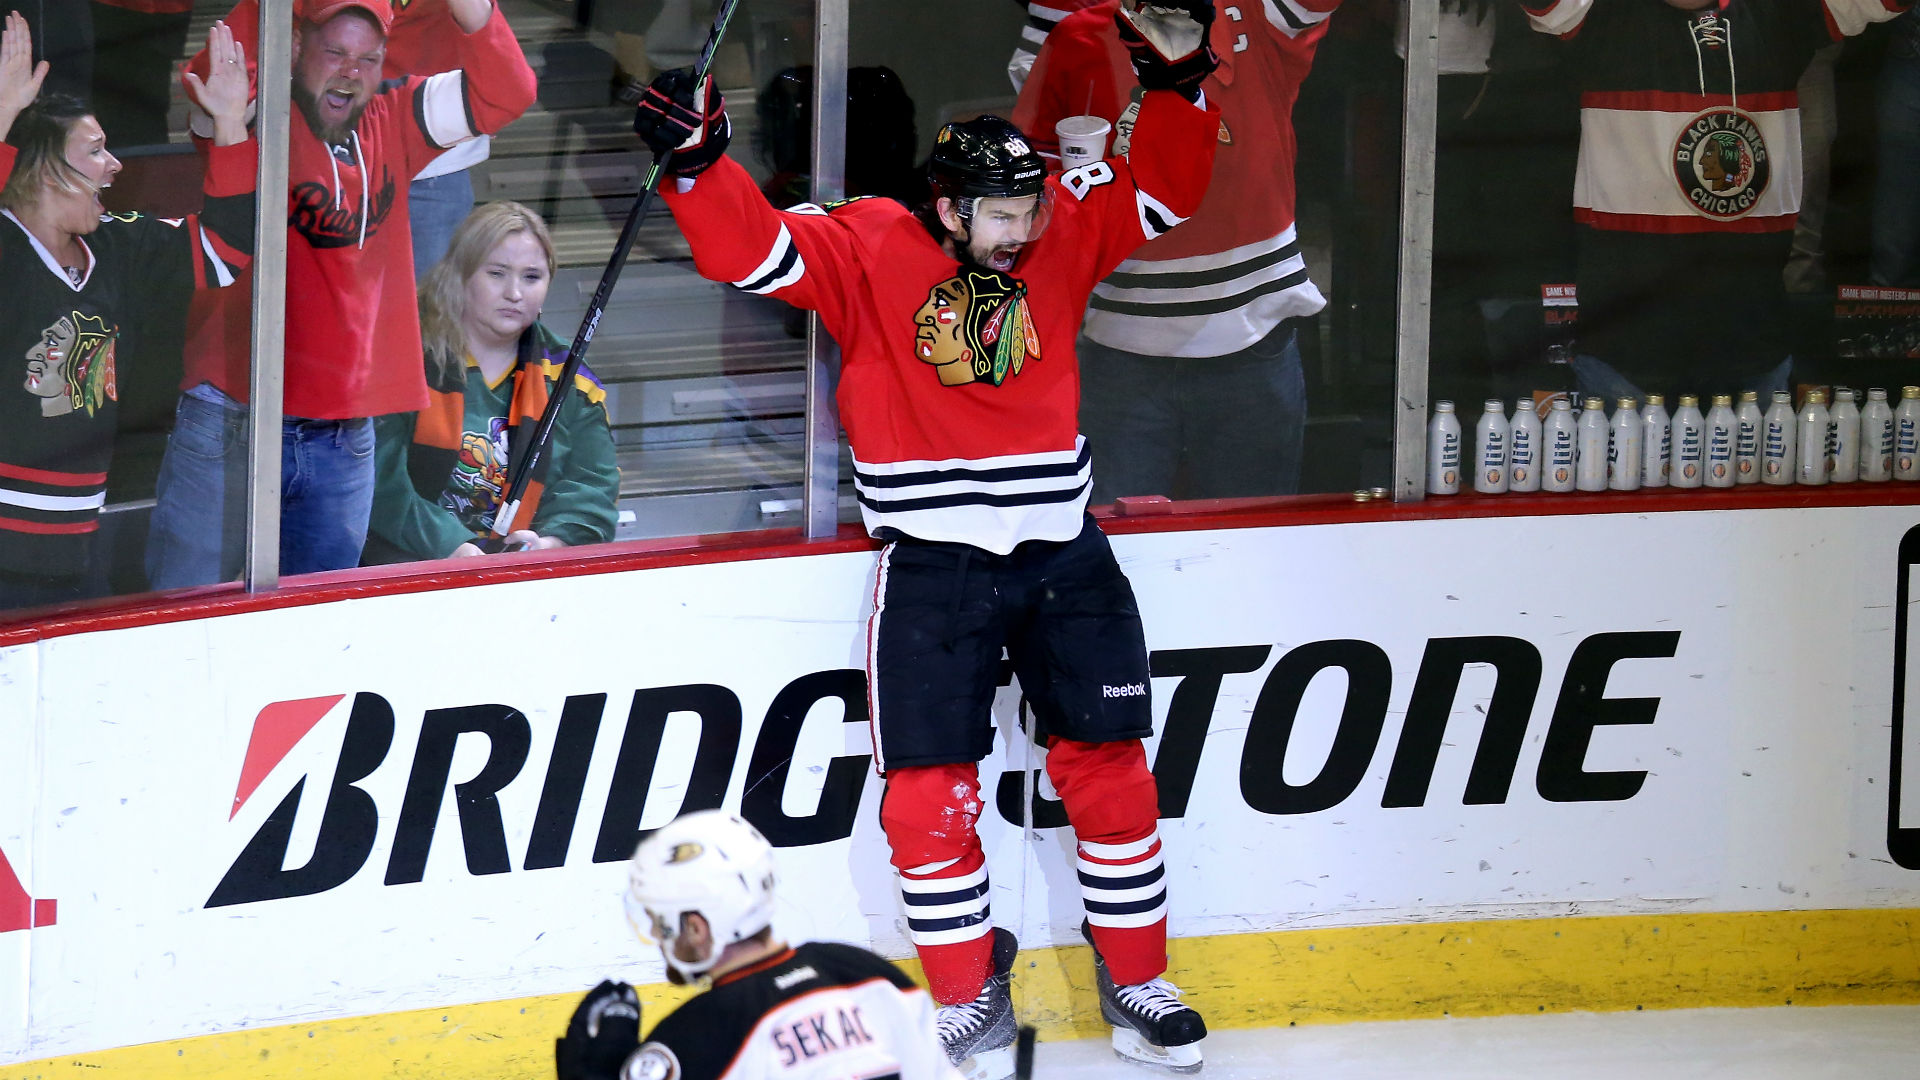 Antoine Vermette's ending was a welcome cliche for Blackhawks